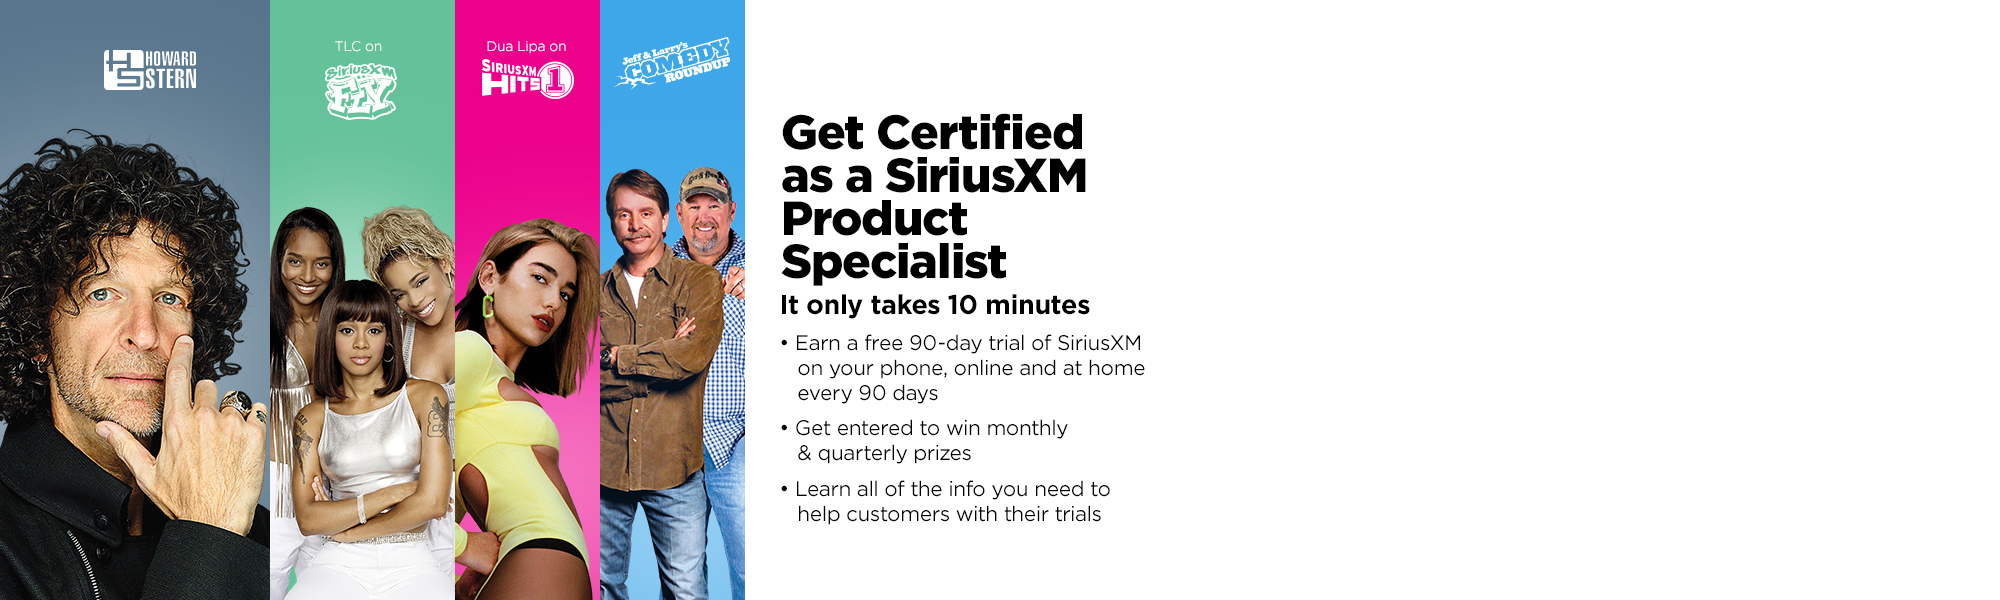 Take SiriusXM e-Learning course to get certified as a SiriusXM Product Specialist, earn a free 90-day trial subscription